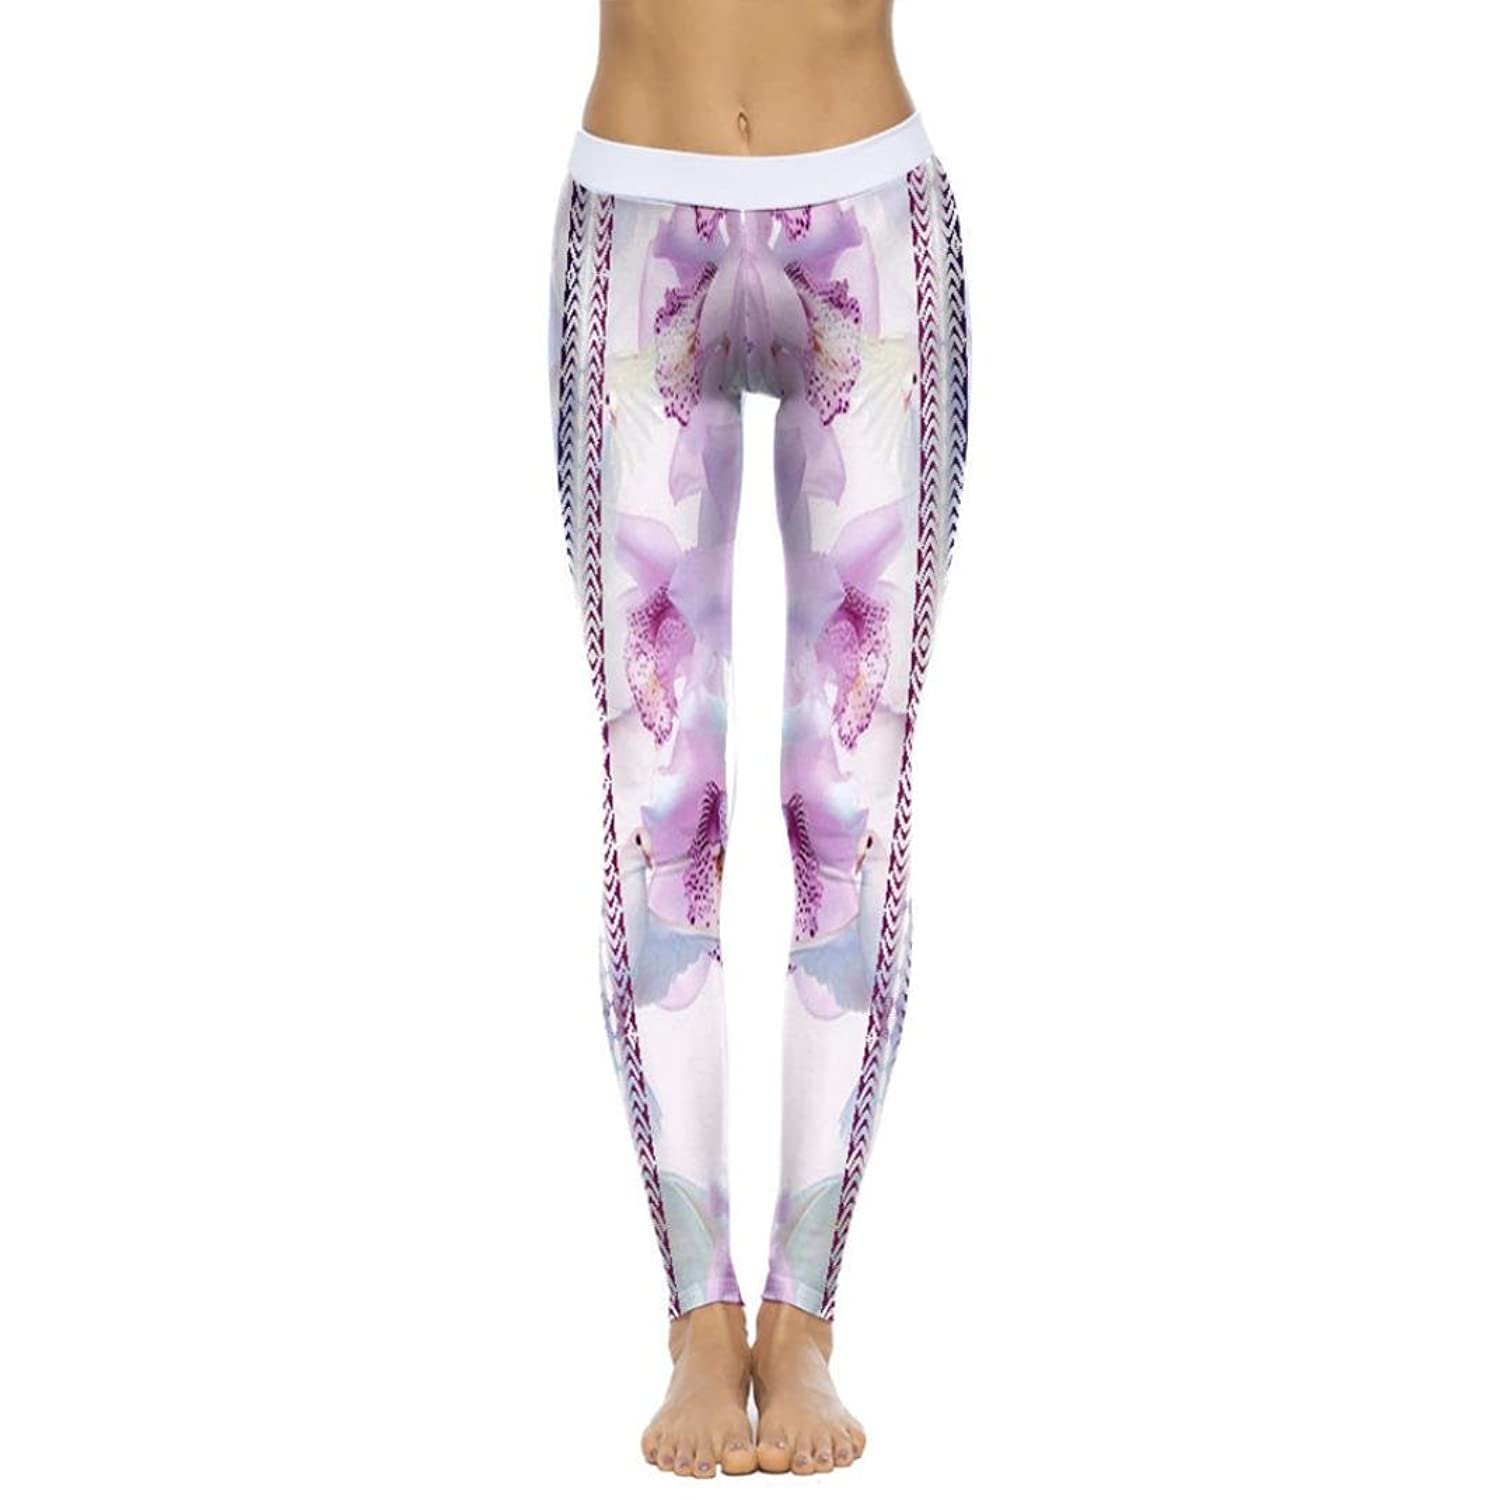 145a1833262937 Amazon.com: Memela Yoga pants Women Print Sports Gym Yoga Running Fitness  Leggings Pants Athletic Trouser: Clothing